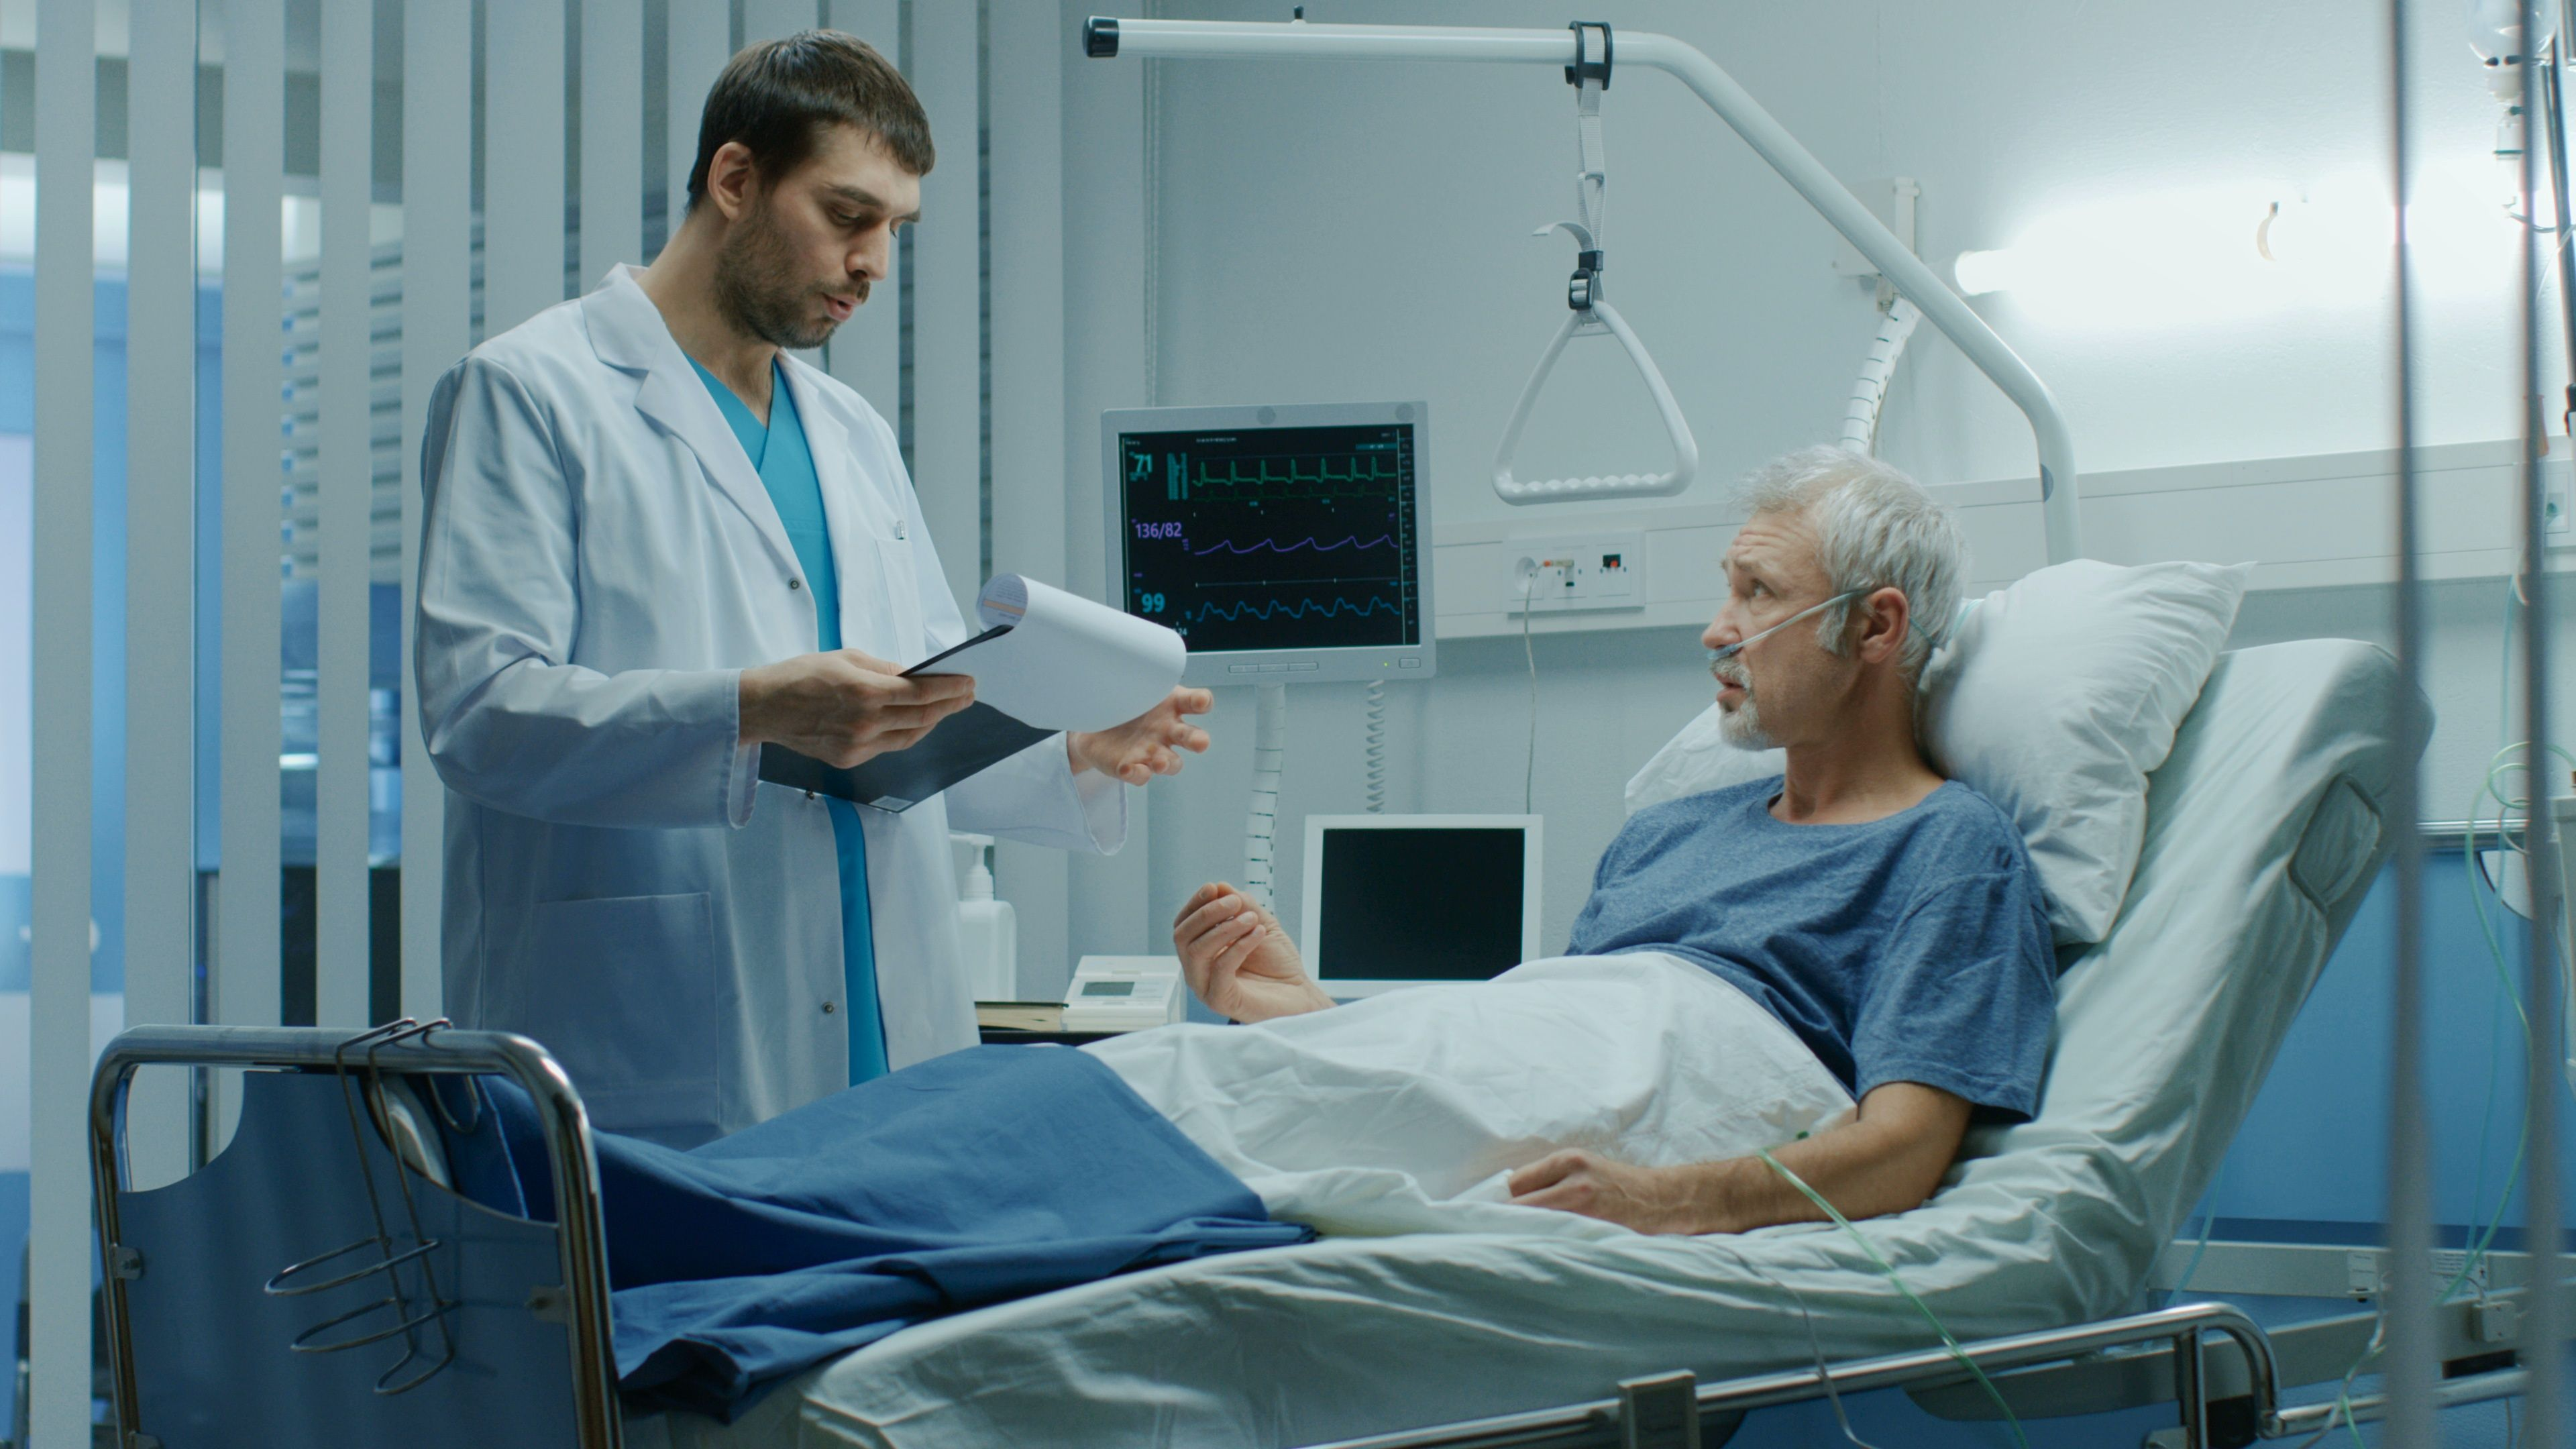 In the Hospital, Recovering Senior Patient Lying in Bed